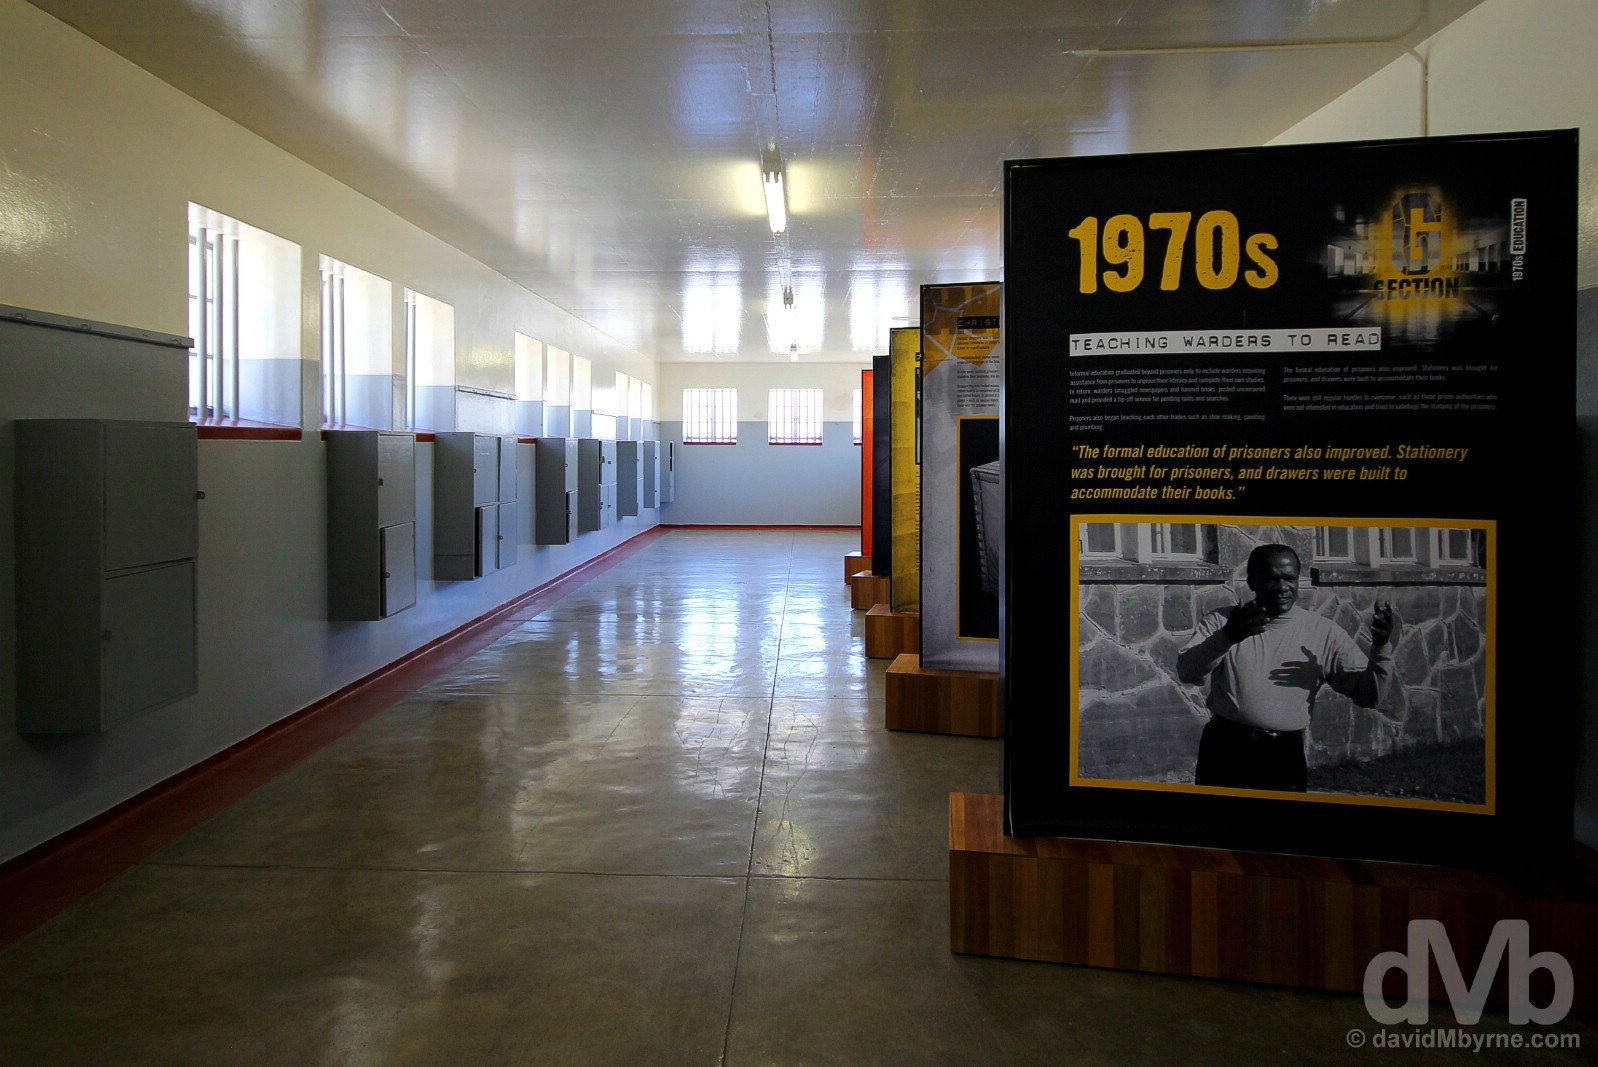 Displays in one of the wings of the prison on Robben Island, Table Bay, Western Cape, South Africa. February 22, 2017.